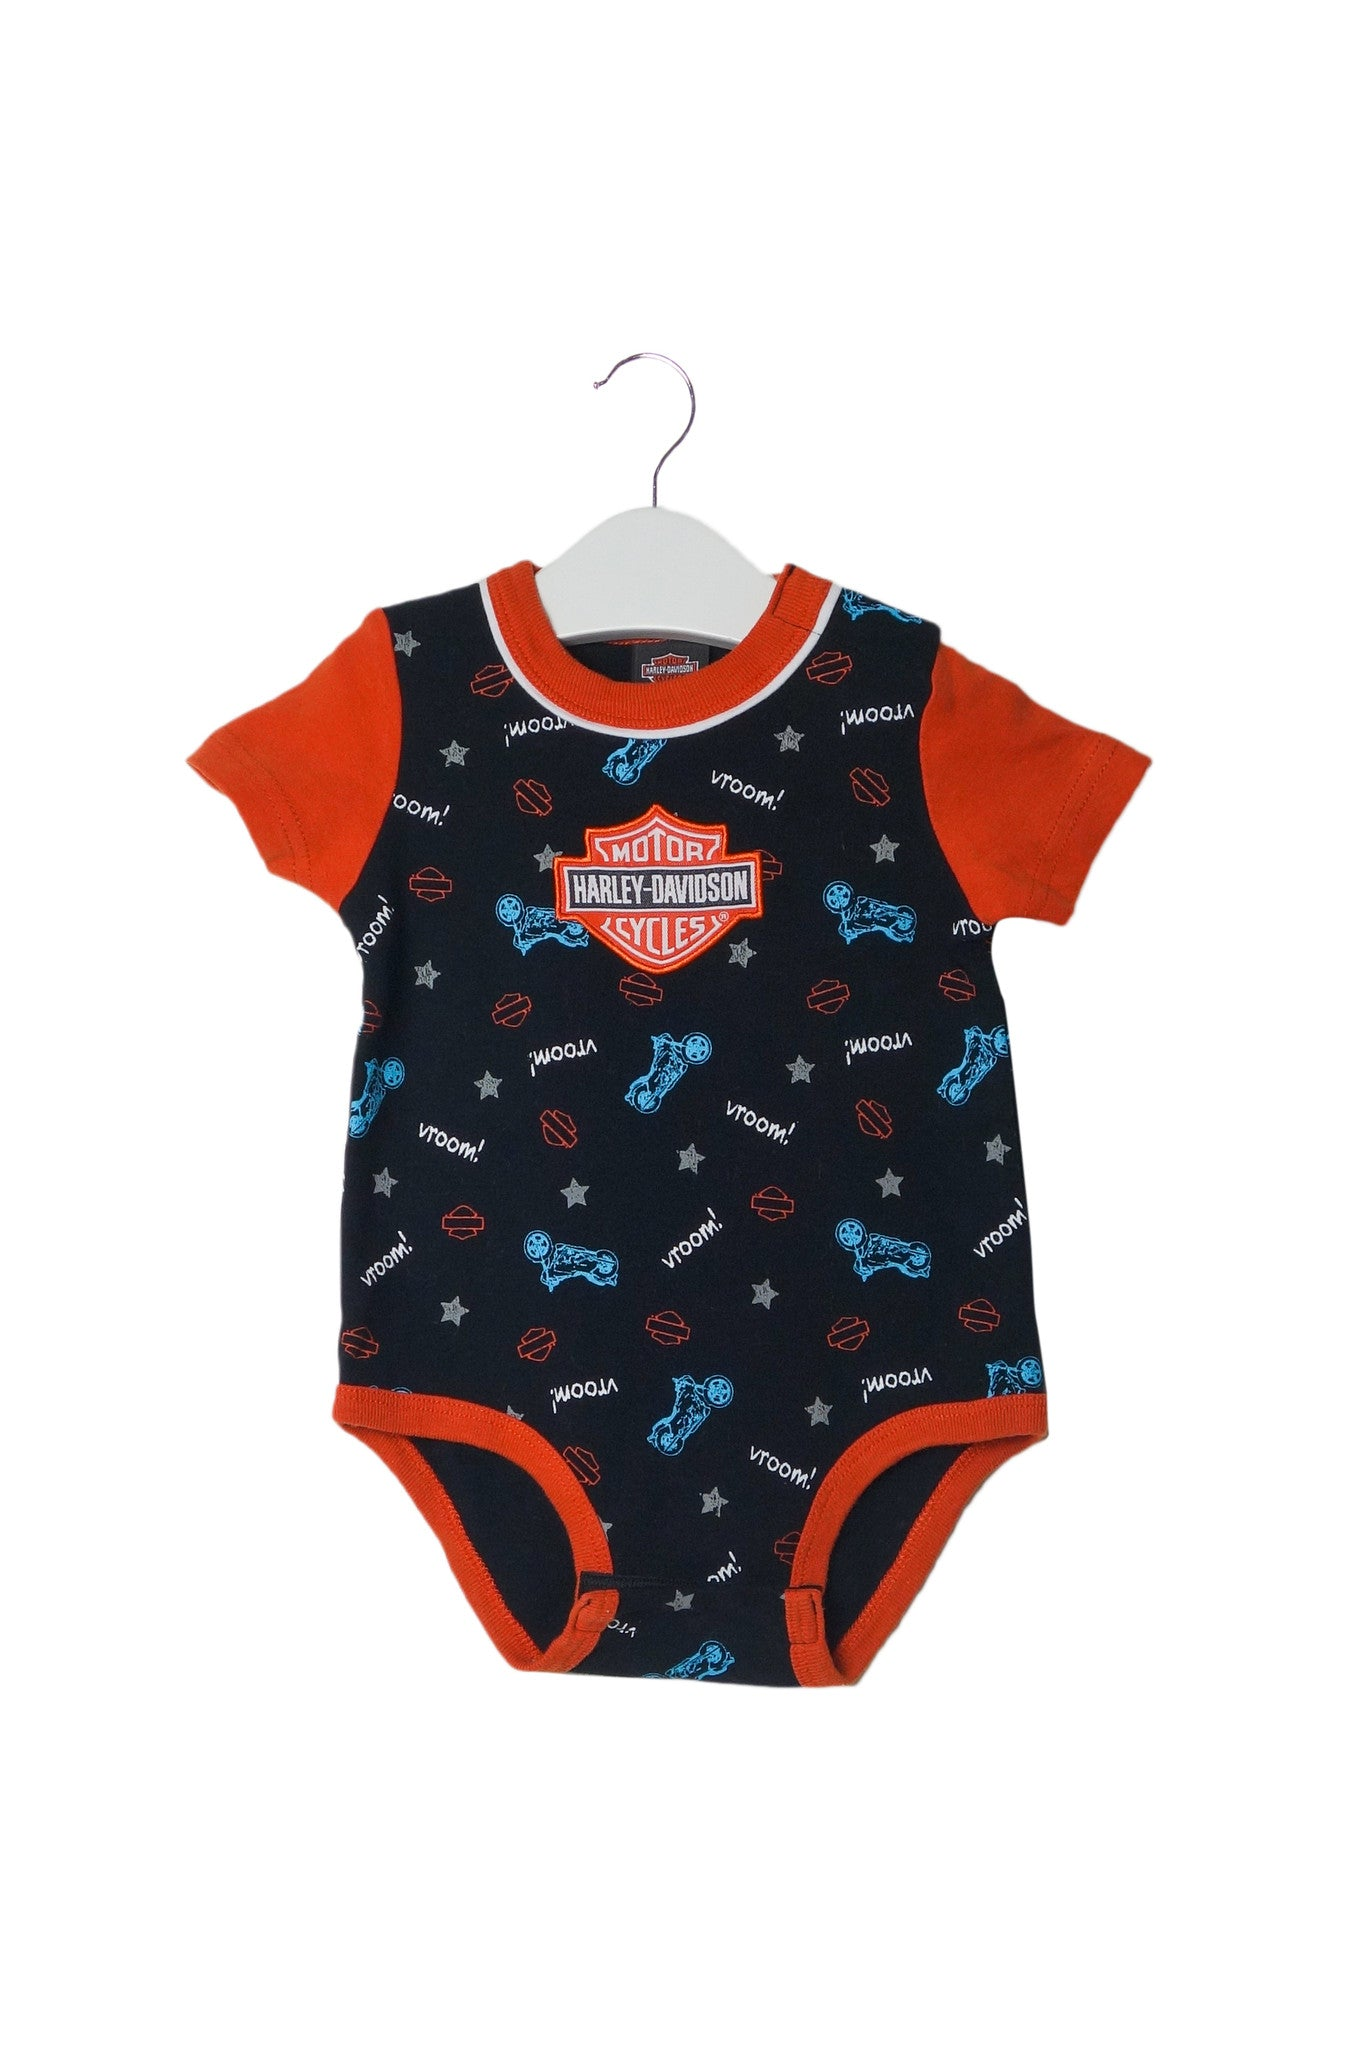 10002748 Harley Davidson Baby~Bodysuit 6-9M at Retykle